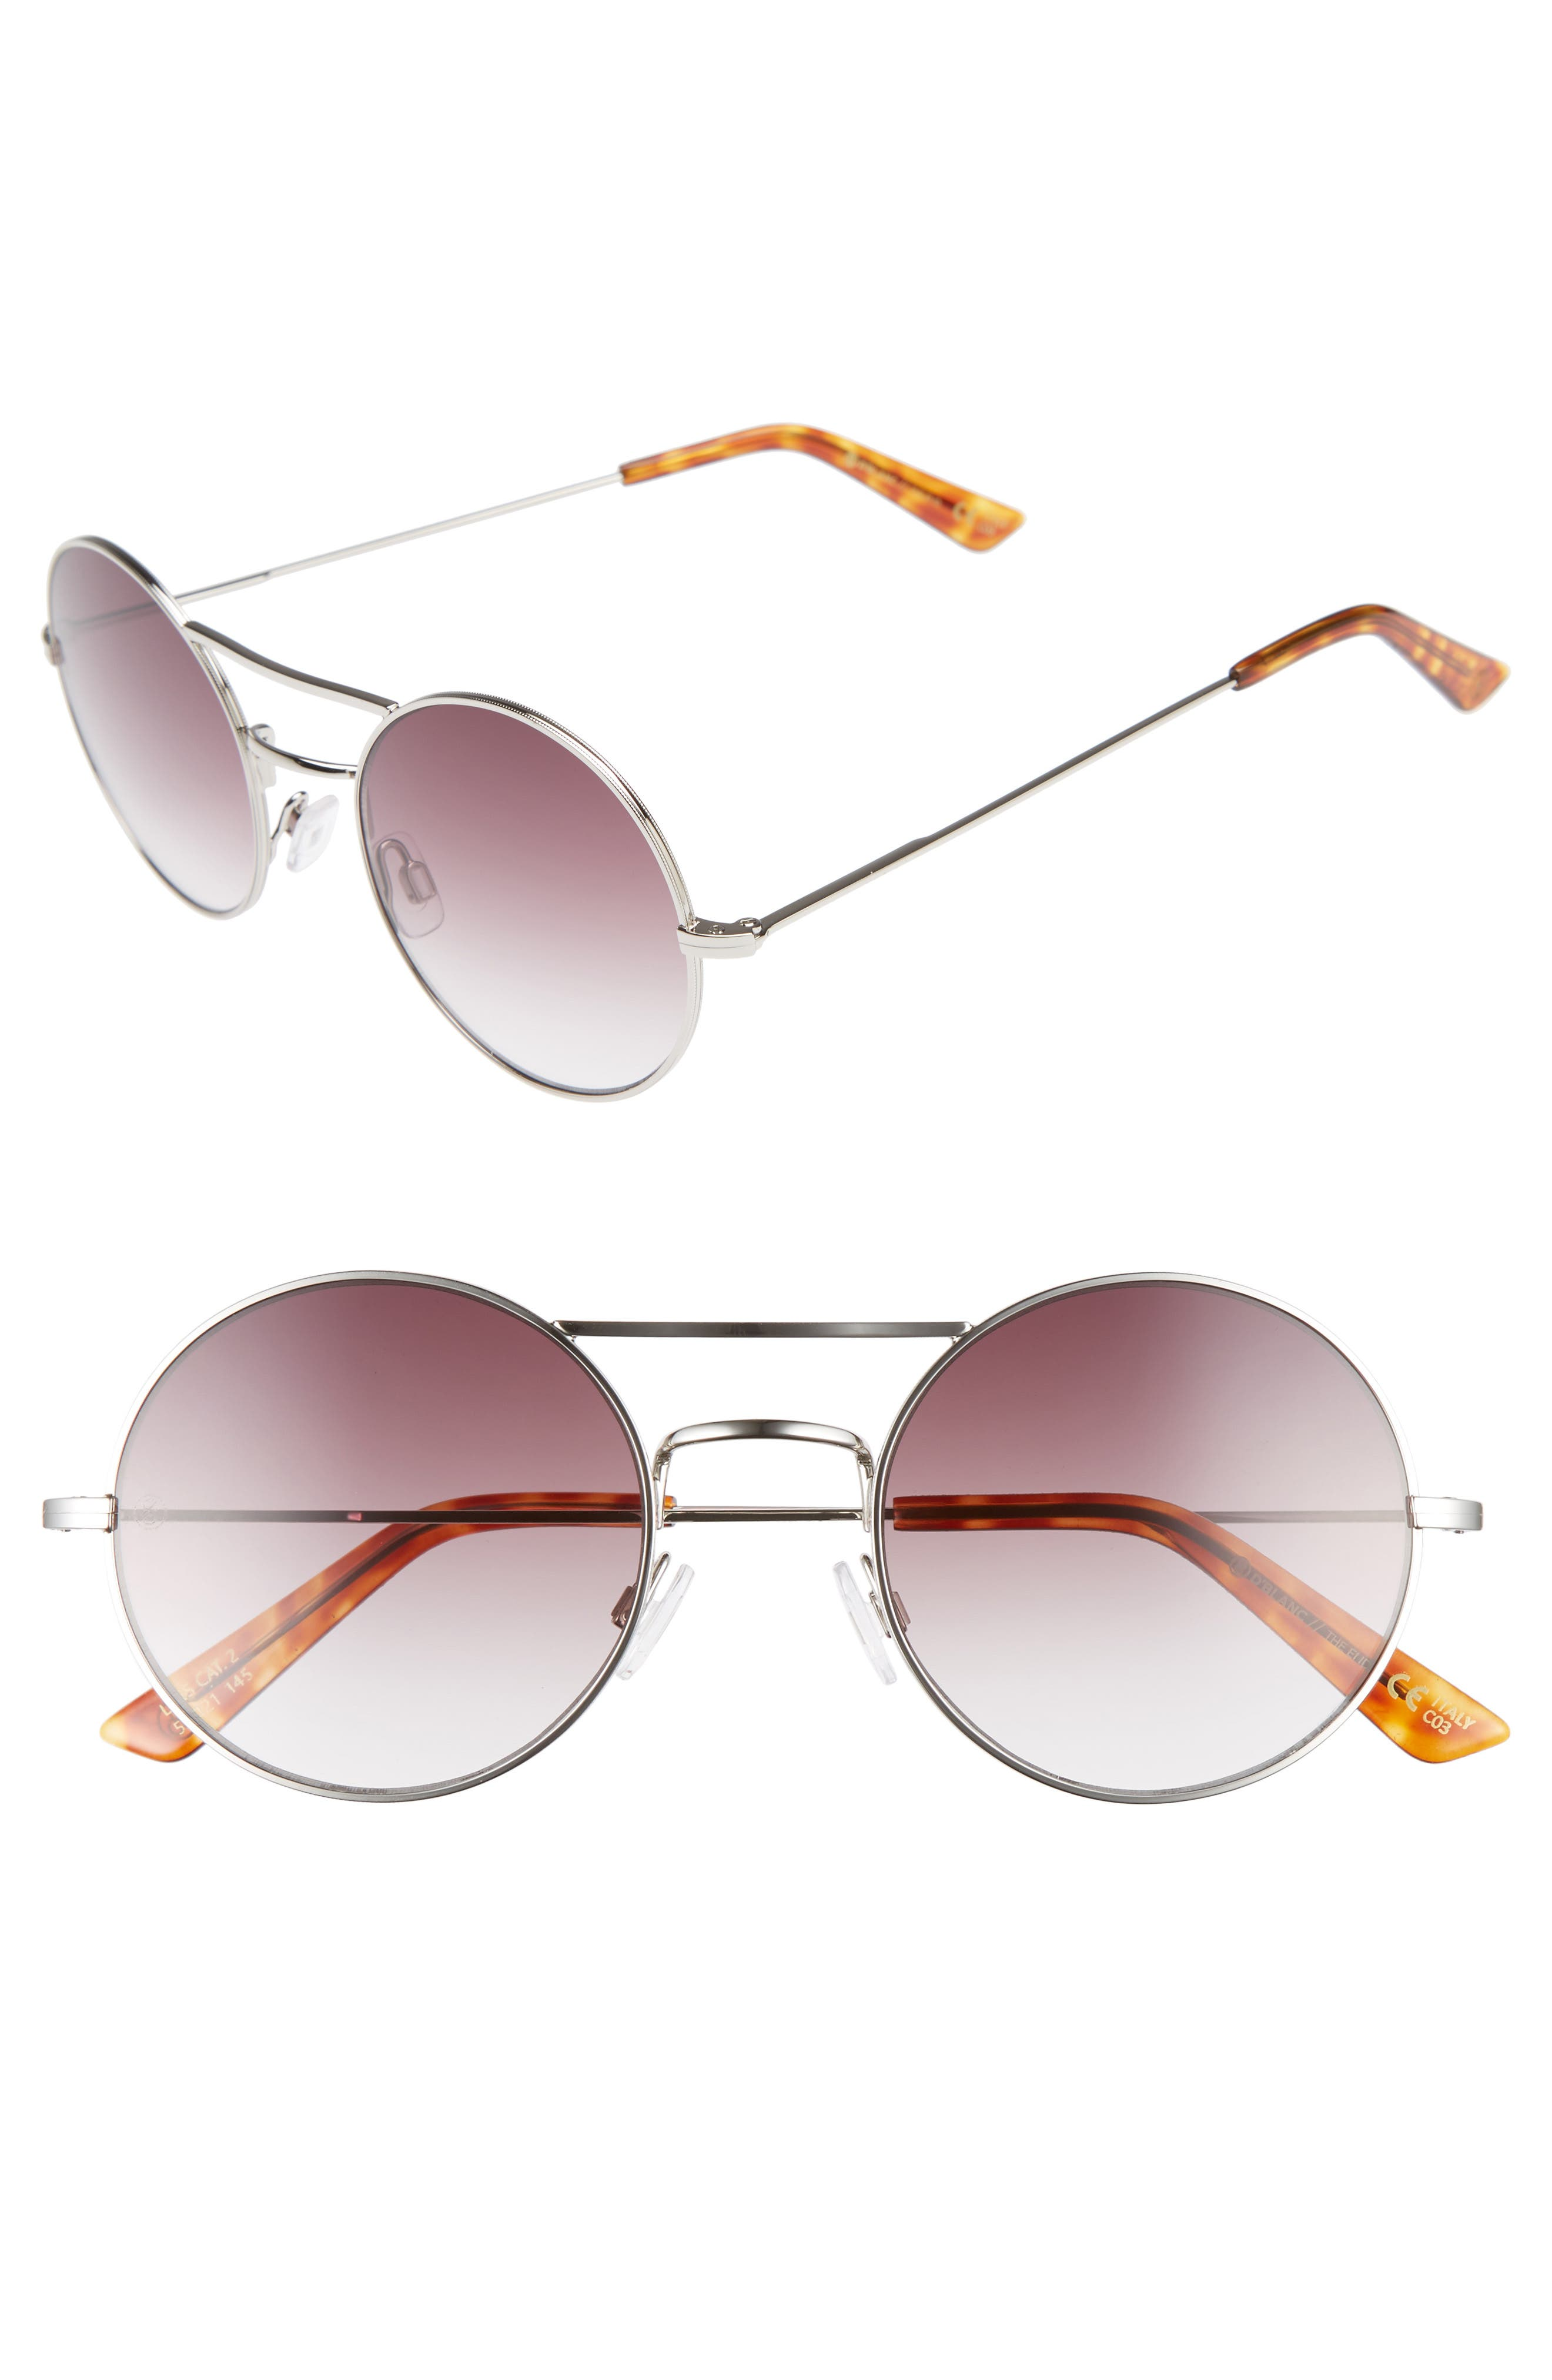 Alternate Image 1 Selected - D'BLANC The End 52mm Gradient Round Sunglasses